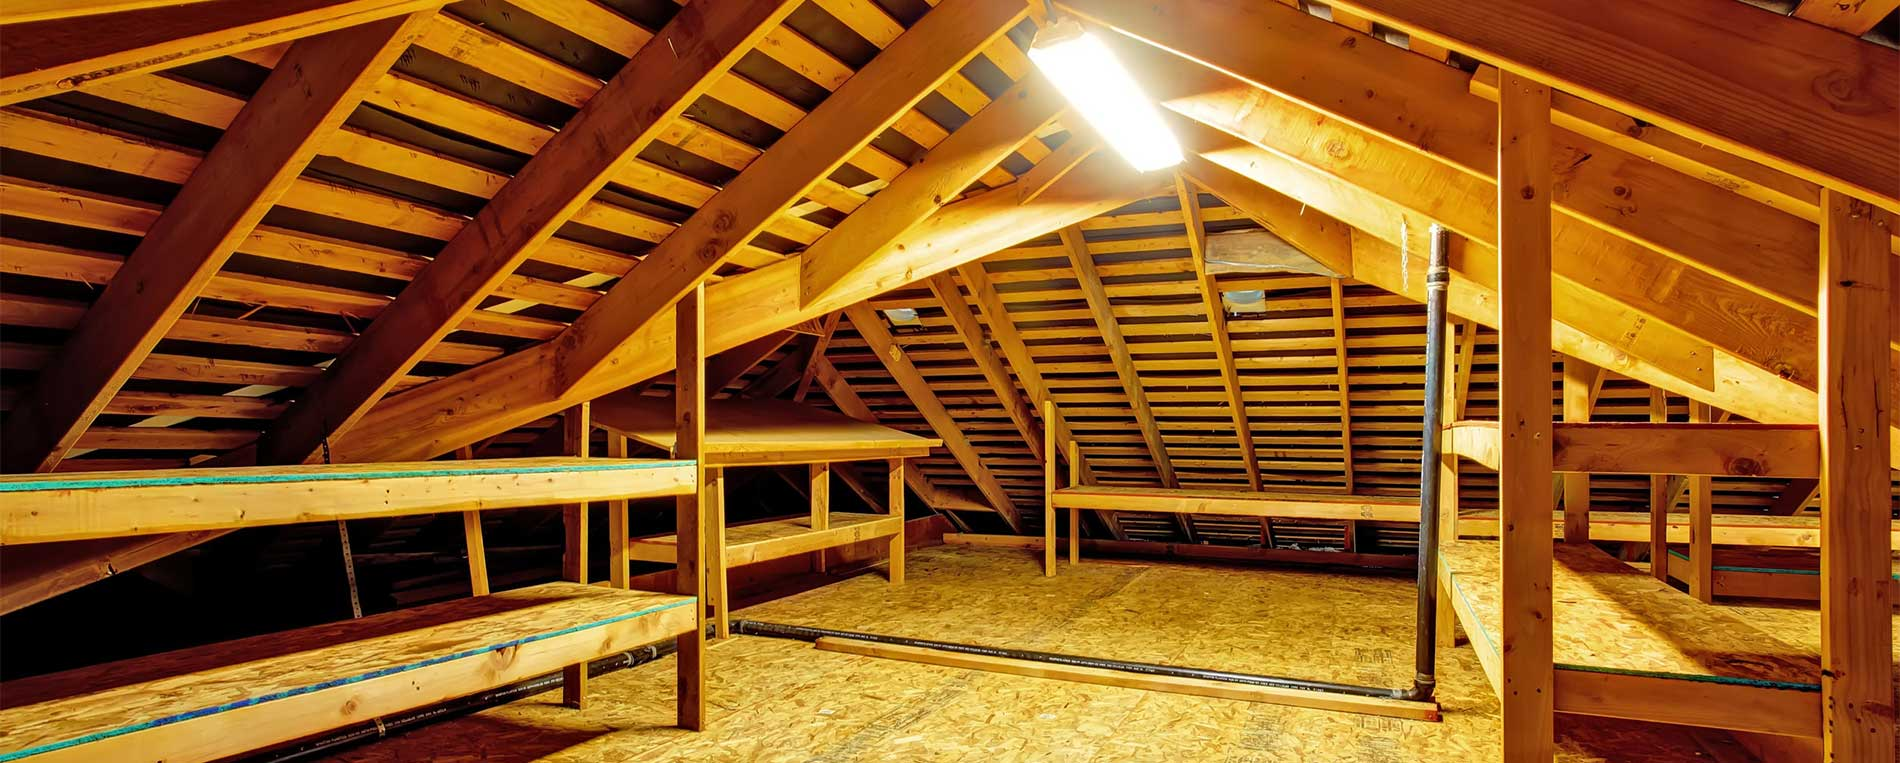 Attic Cleaning Santa Monica Ca Commercial Amp Residential